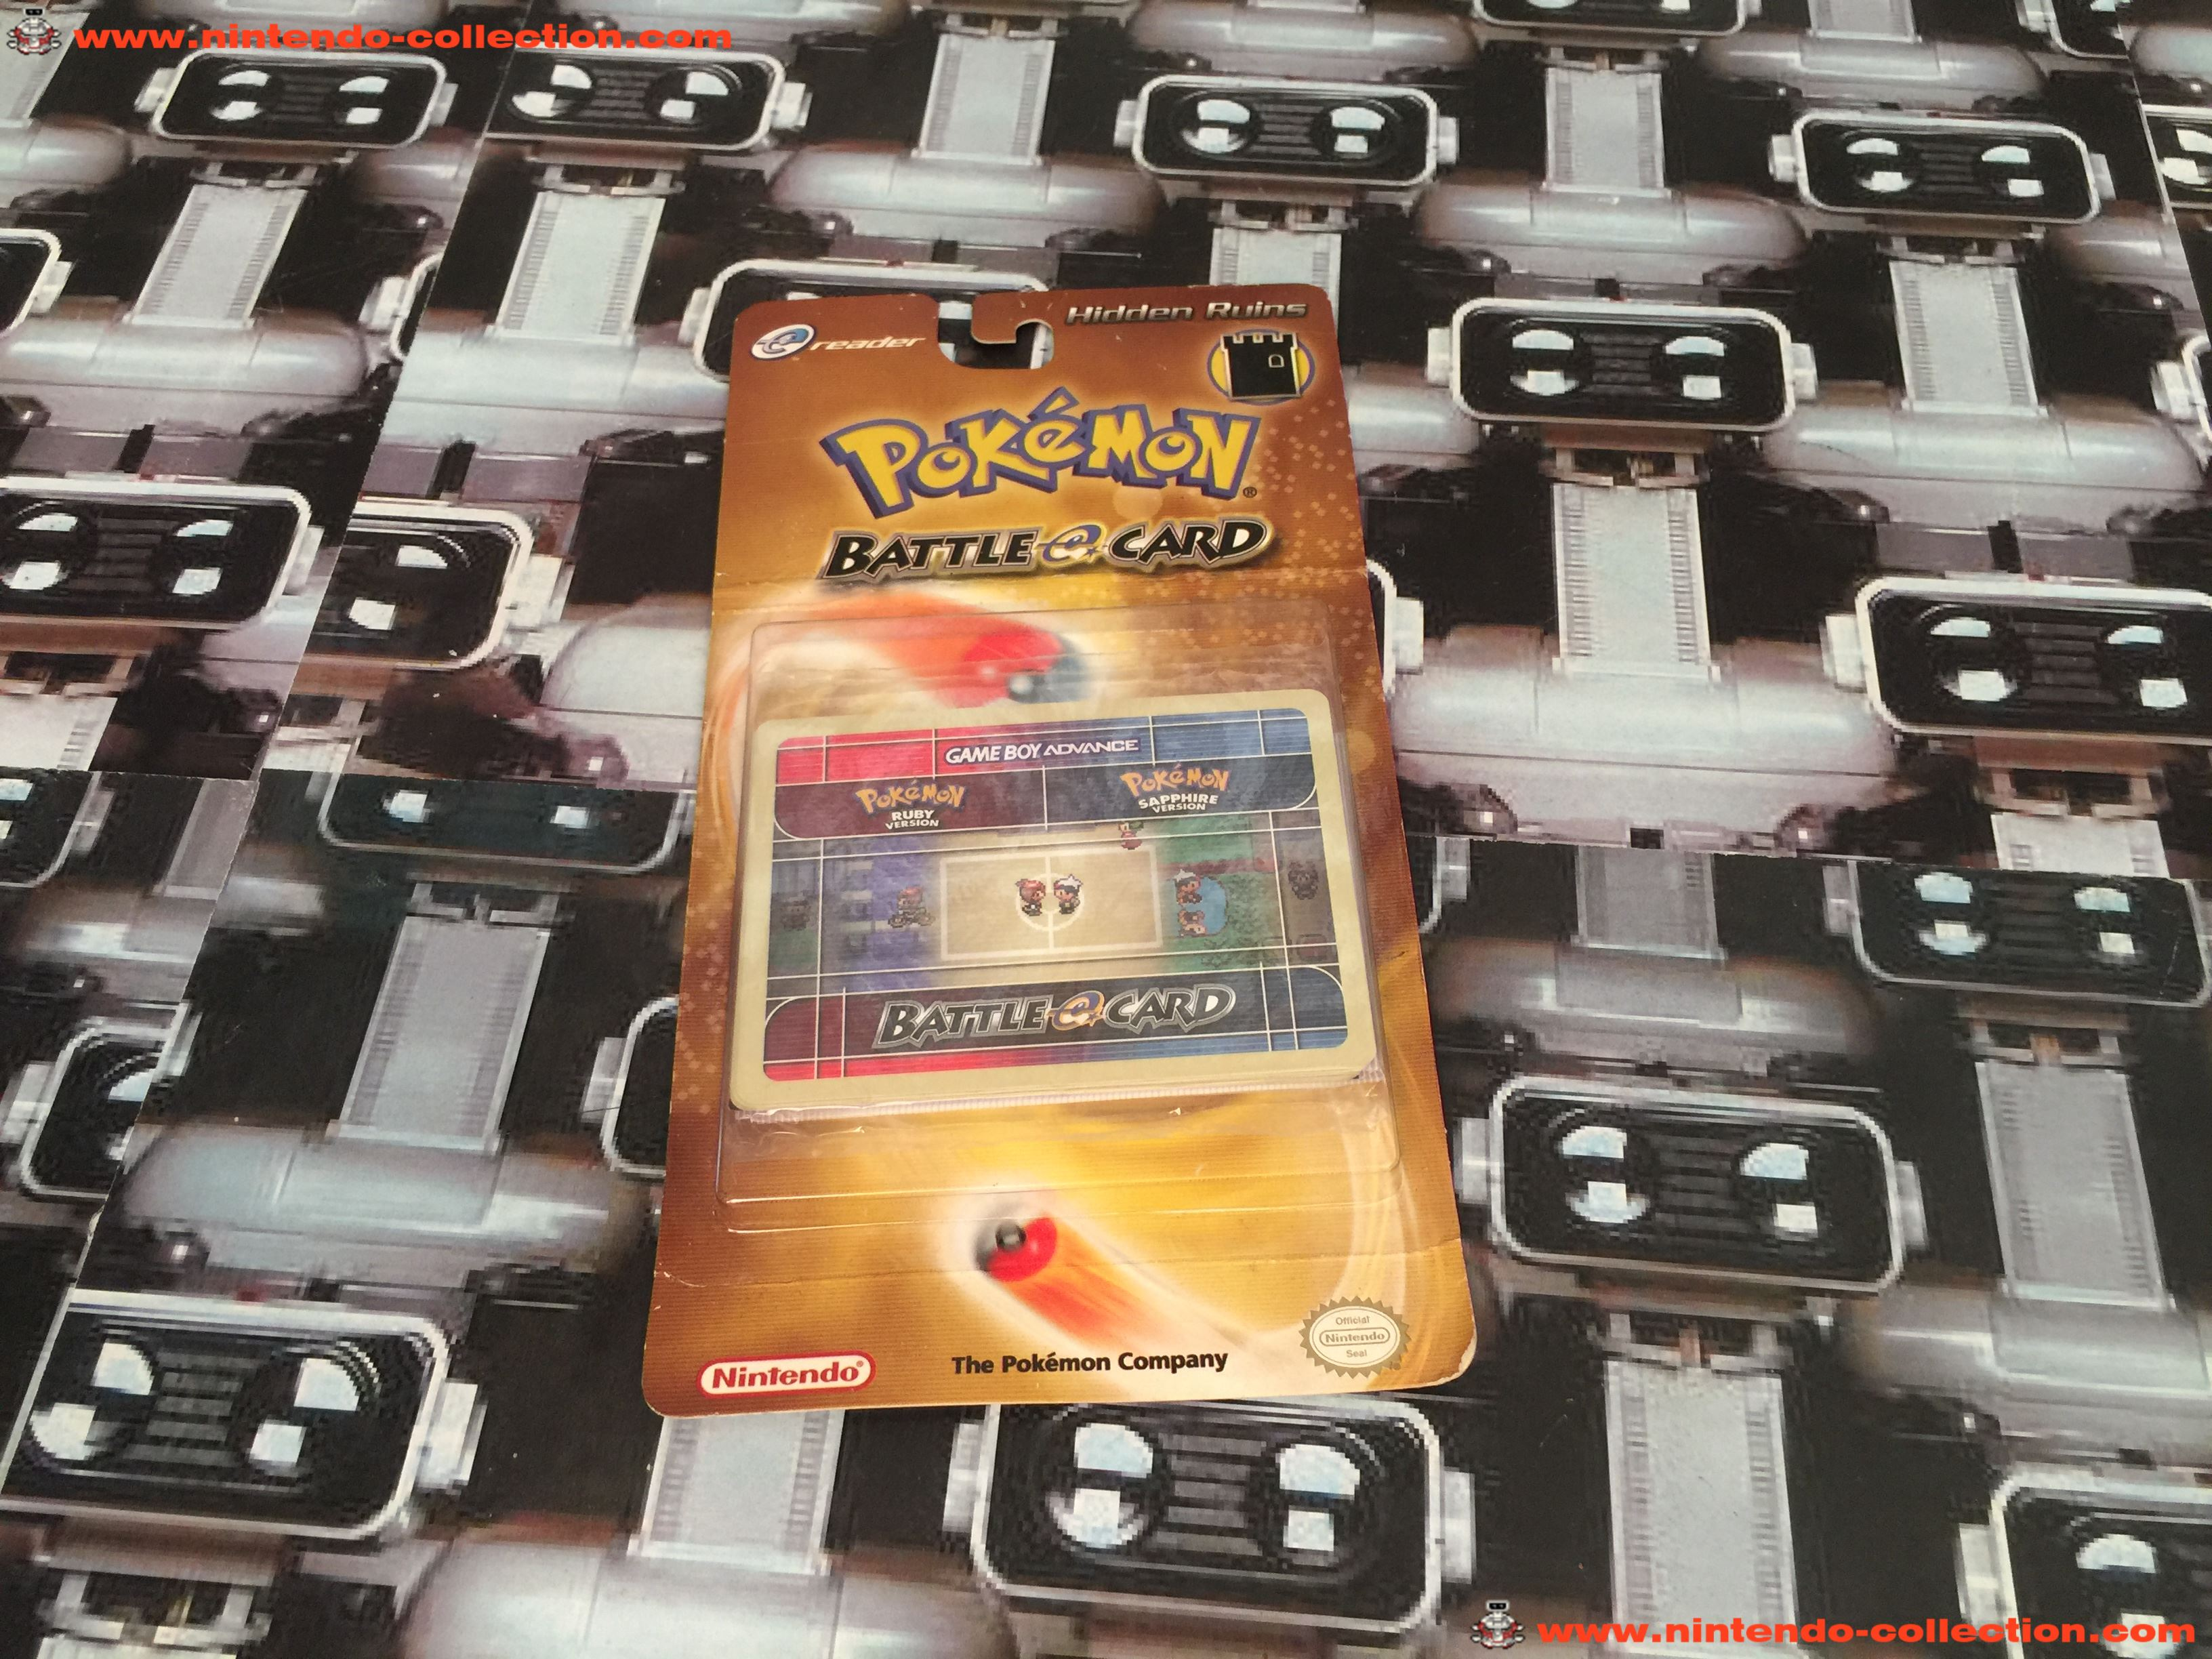 www.nintendo-collection.com - Gameboy Advance GBA Ereader E Reader Card Pack Paquet Carte Pokemon Ba